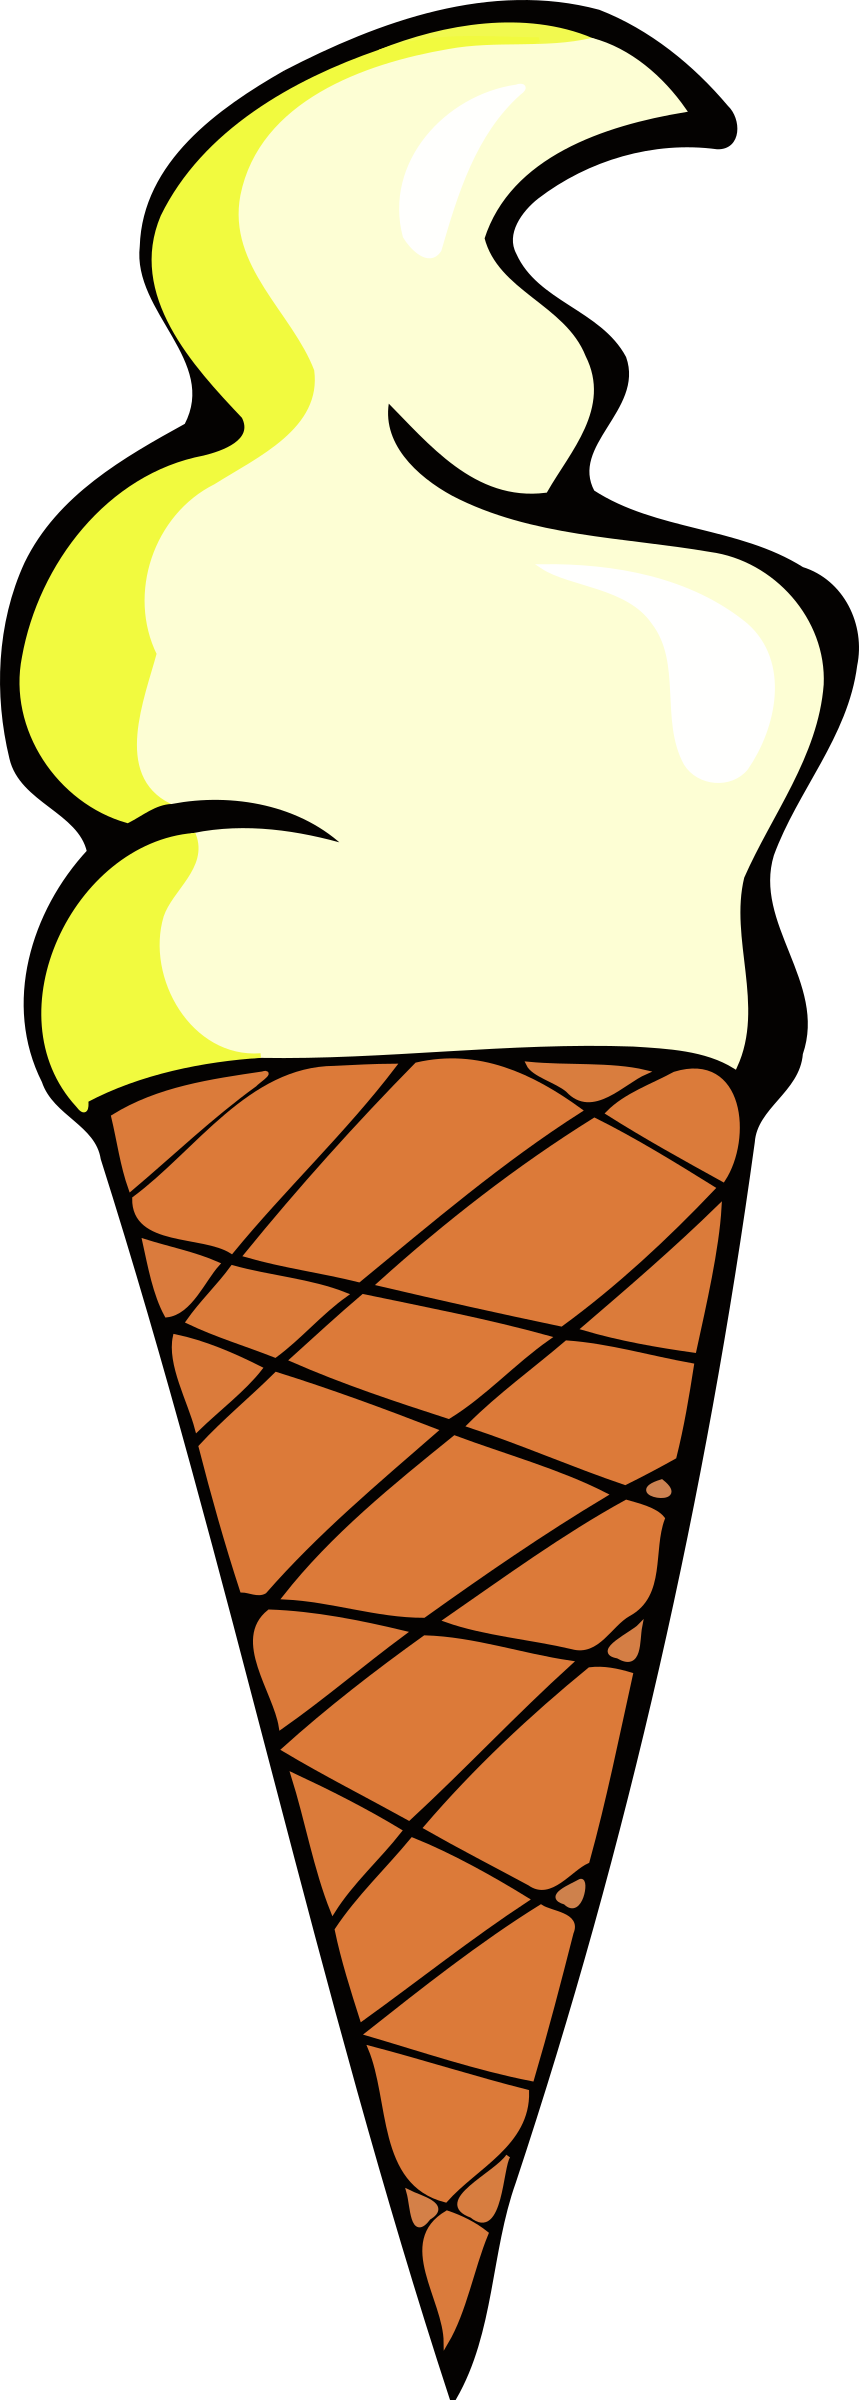 Ice cream 4 by Firkin